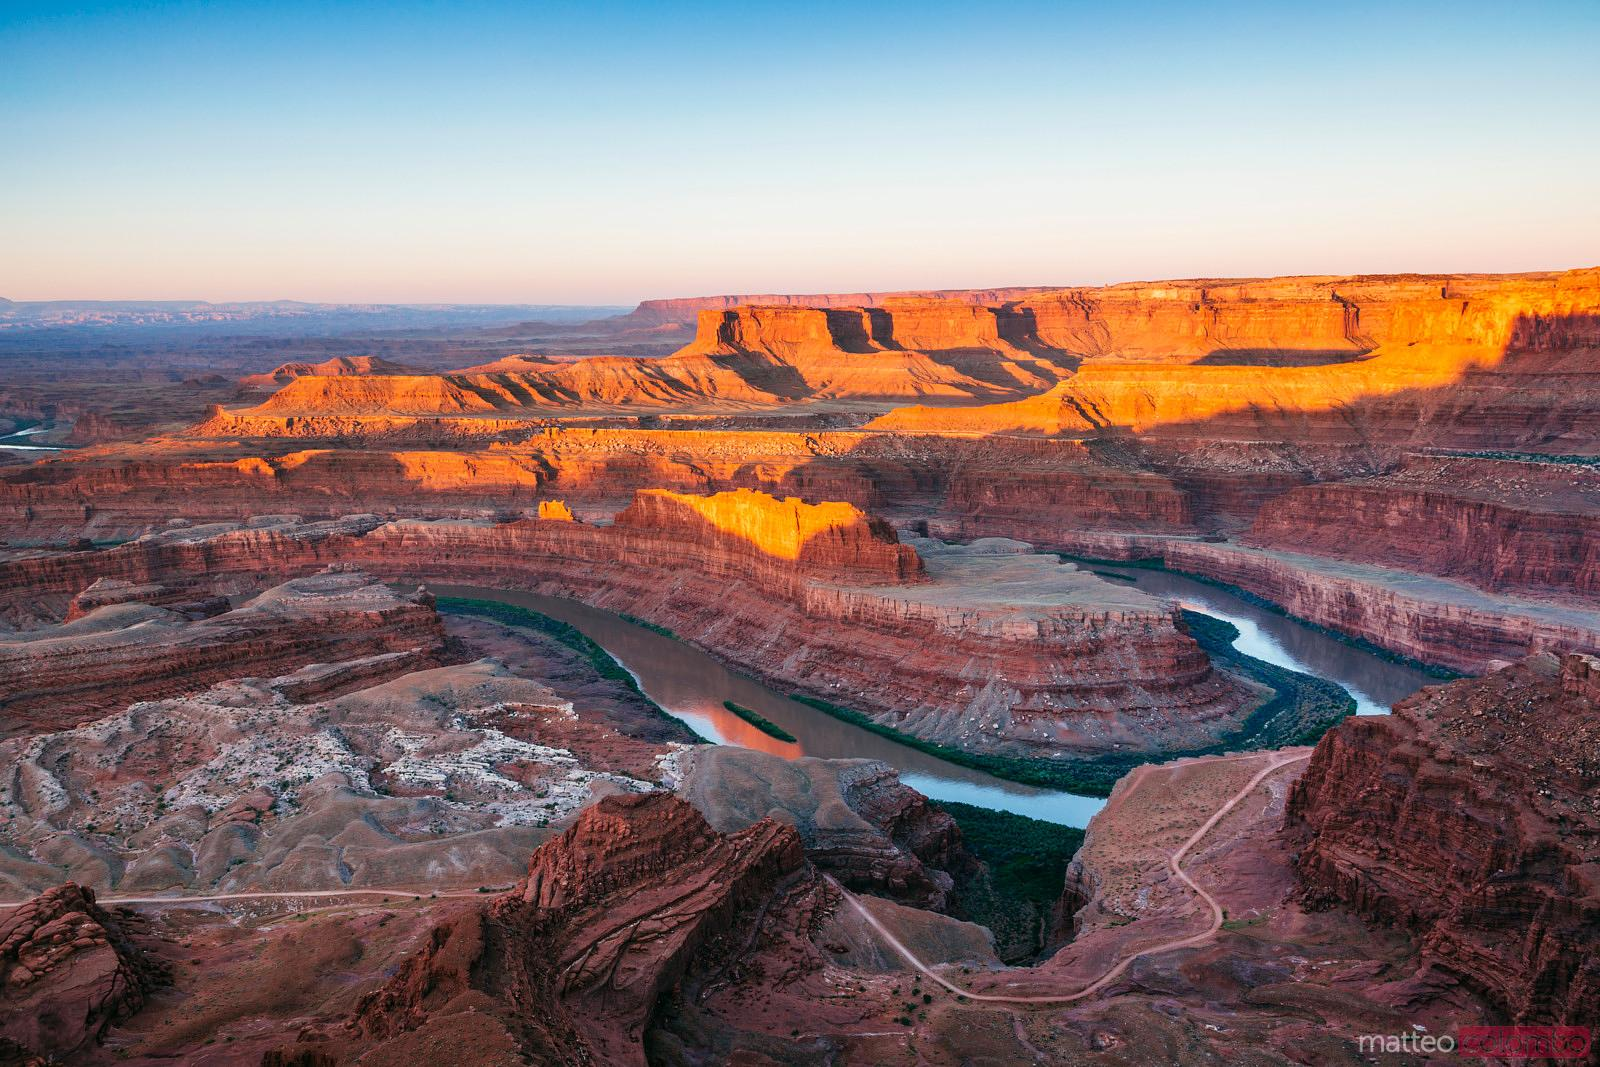 Sunrise at Dead Horse point, Canyonlands, USA